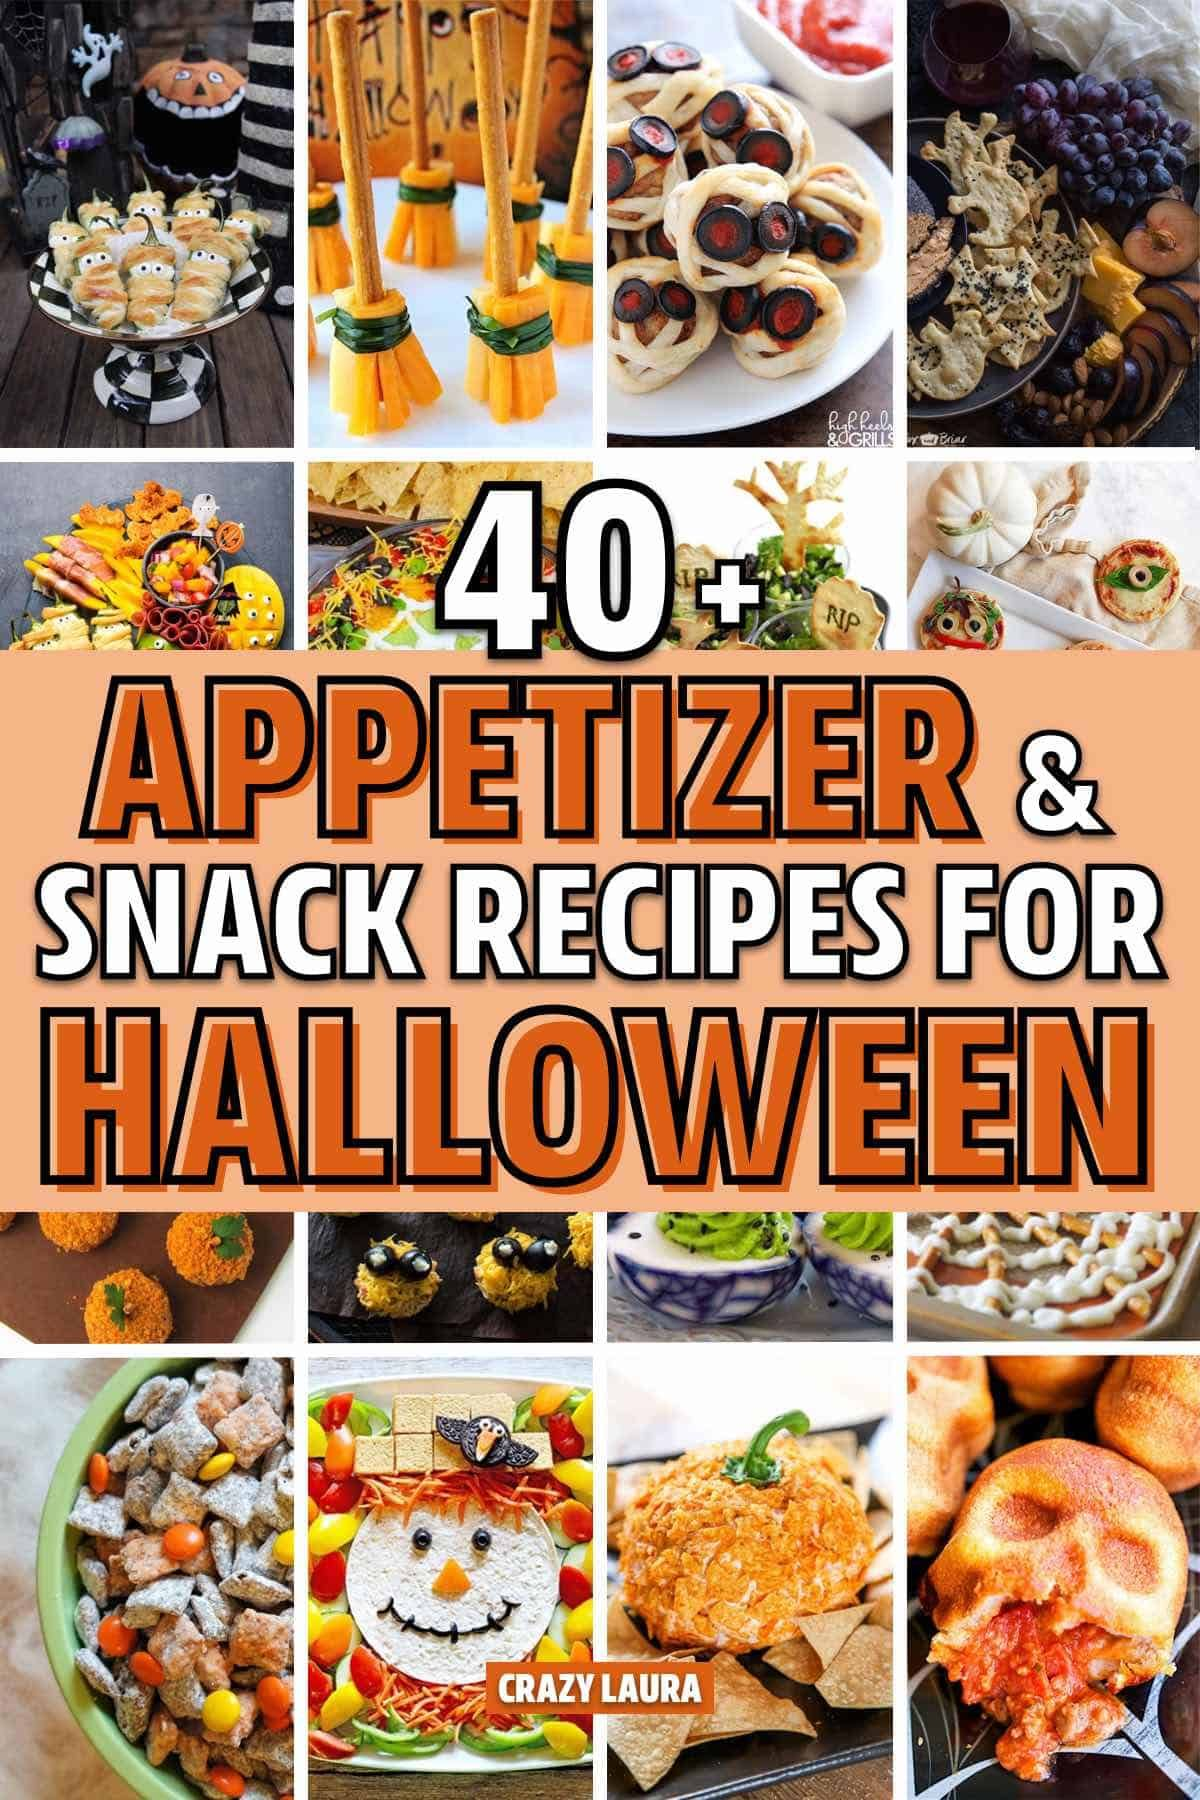 16+ Best Halloween Appetizer & Snack Ideas For 16 - Crazy Laura